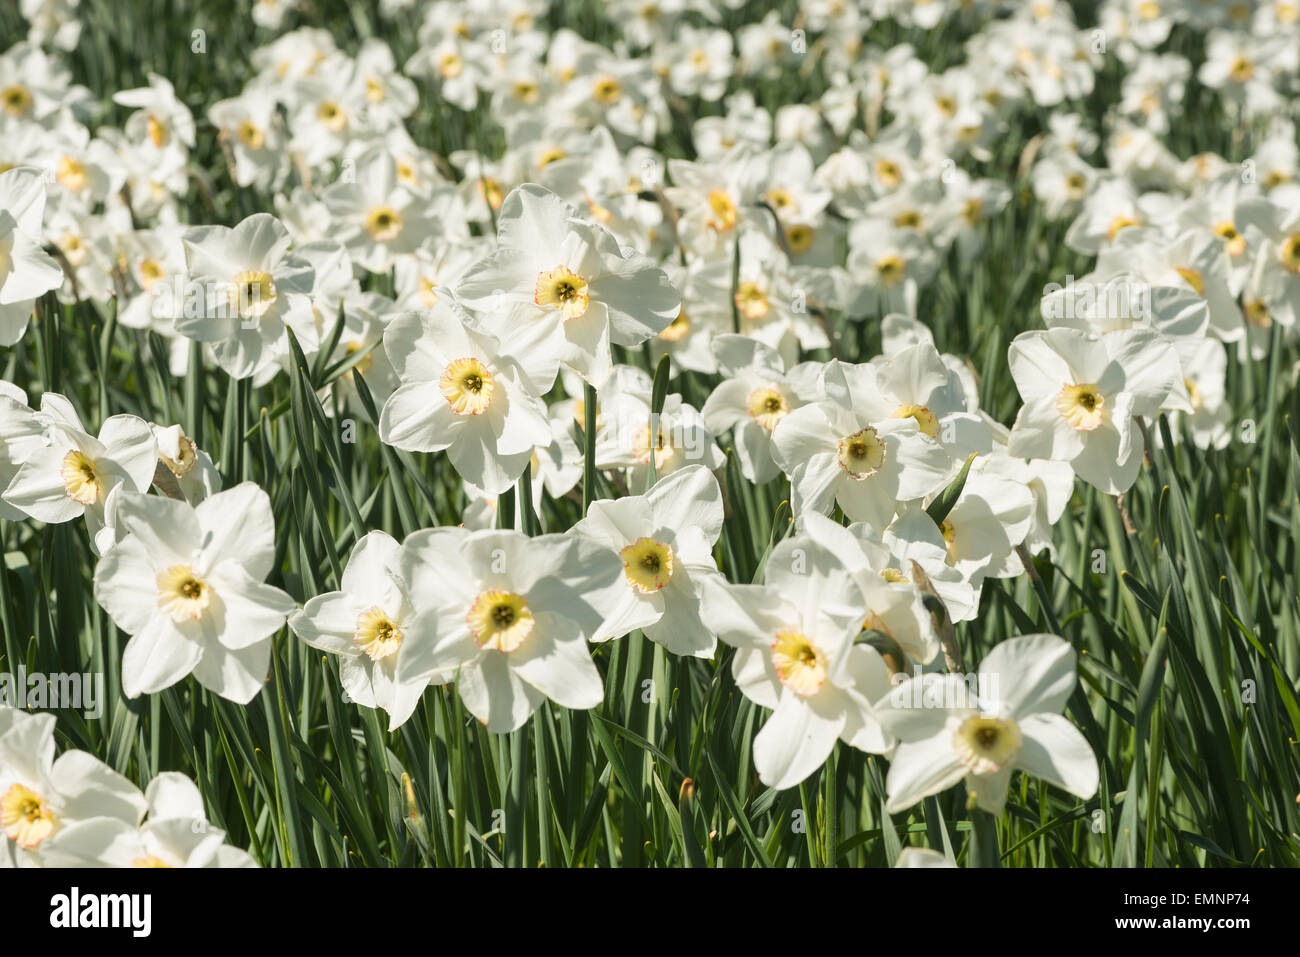 Spring White Narcissus Masses Lots Of Daffodil Bunch Of Flowers